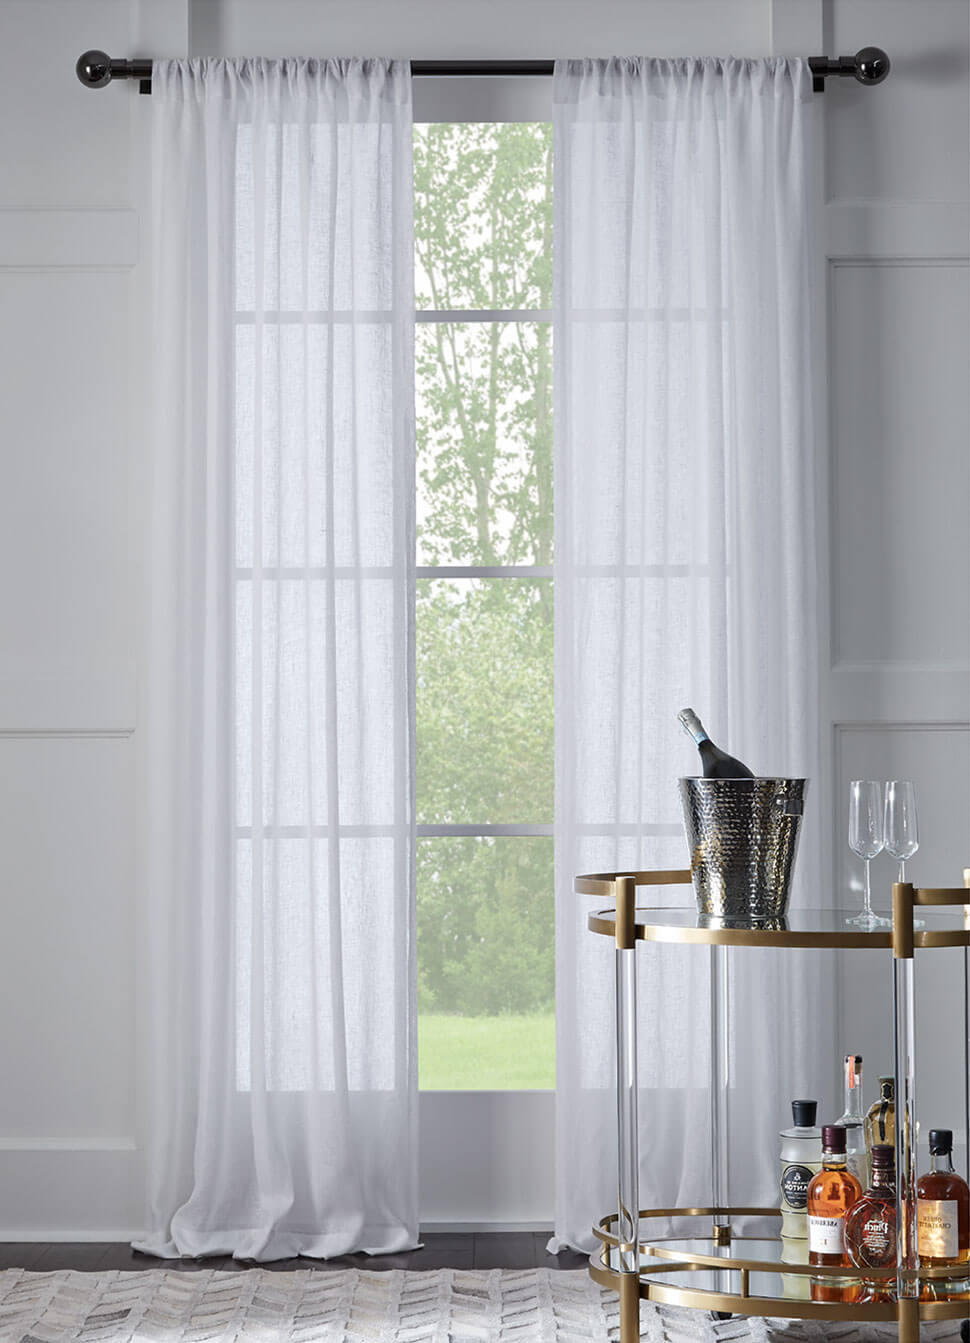 Noble drapery collection: Sheers